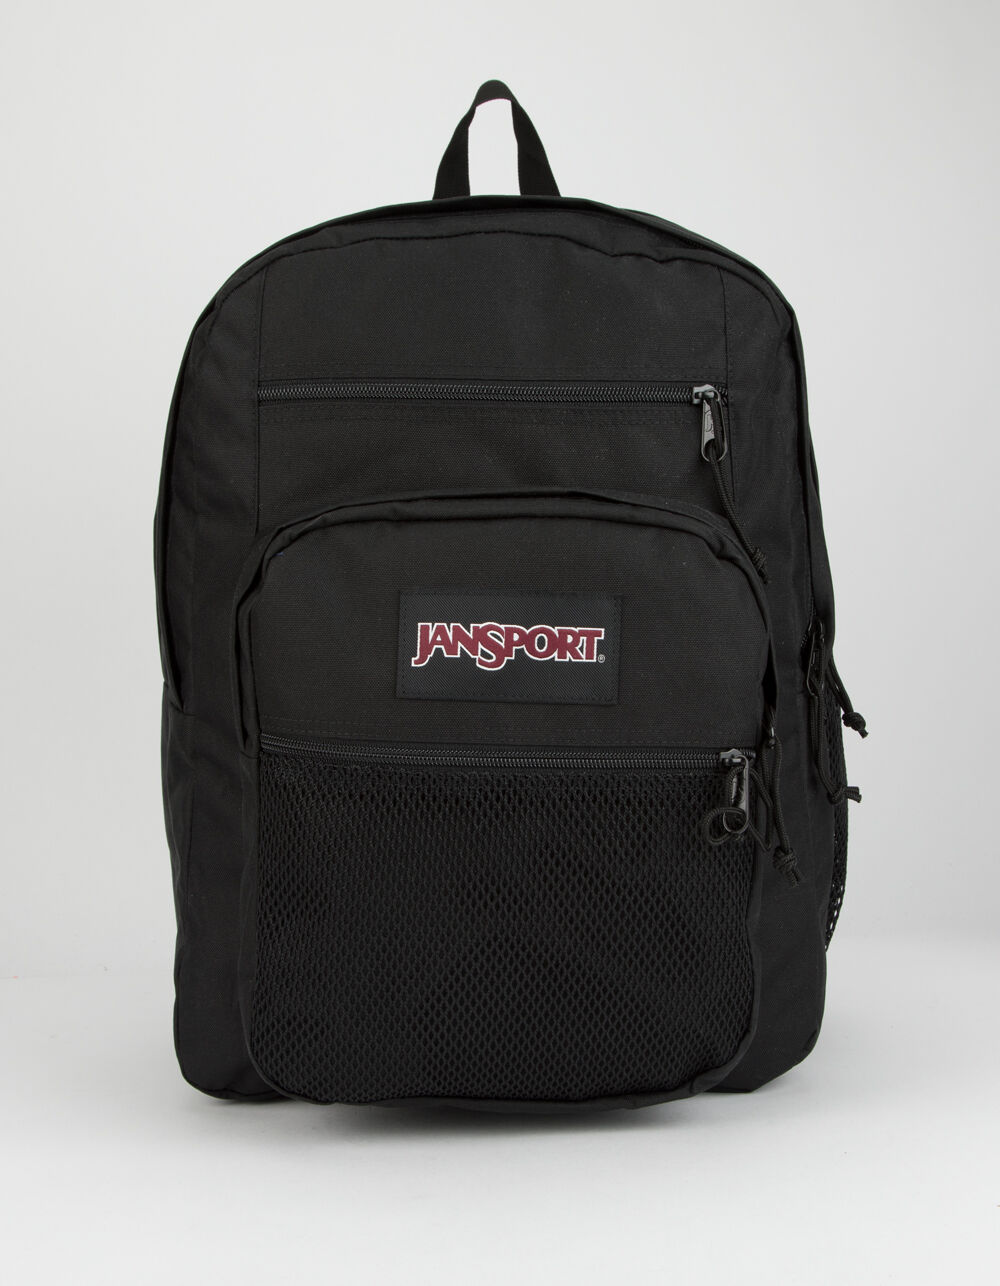 JanSport Large Black Backpack